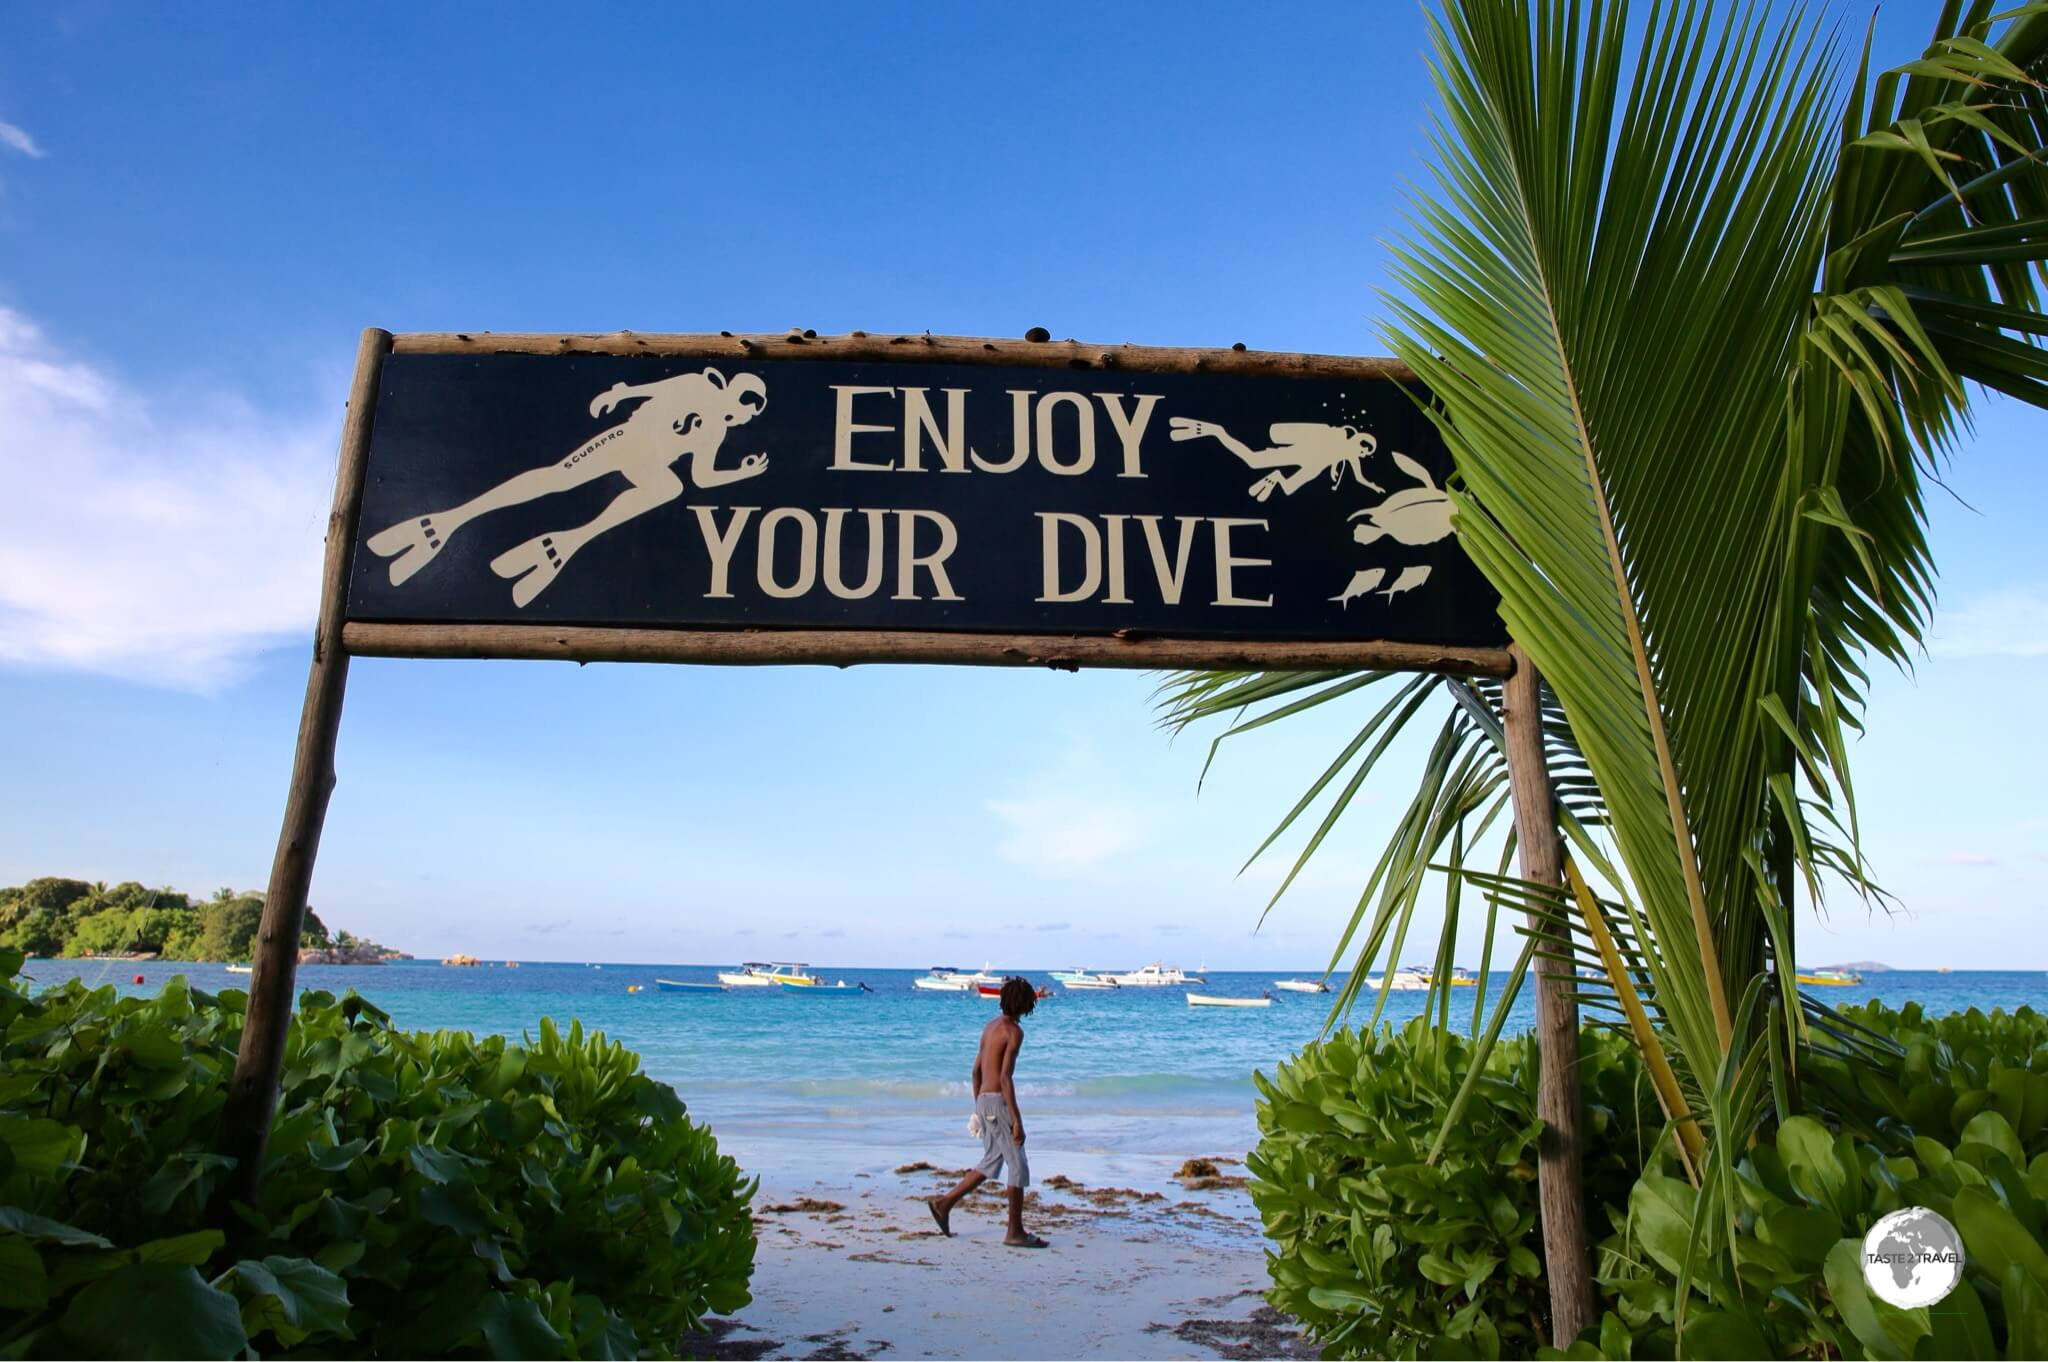 Some final advice from the owners of Octopus Diver prior to boarding the dive boat.